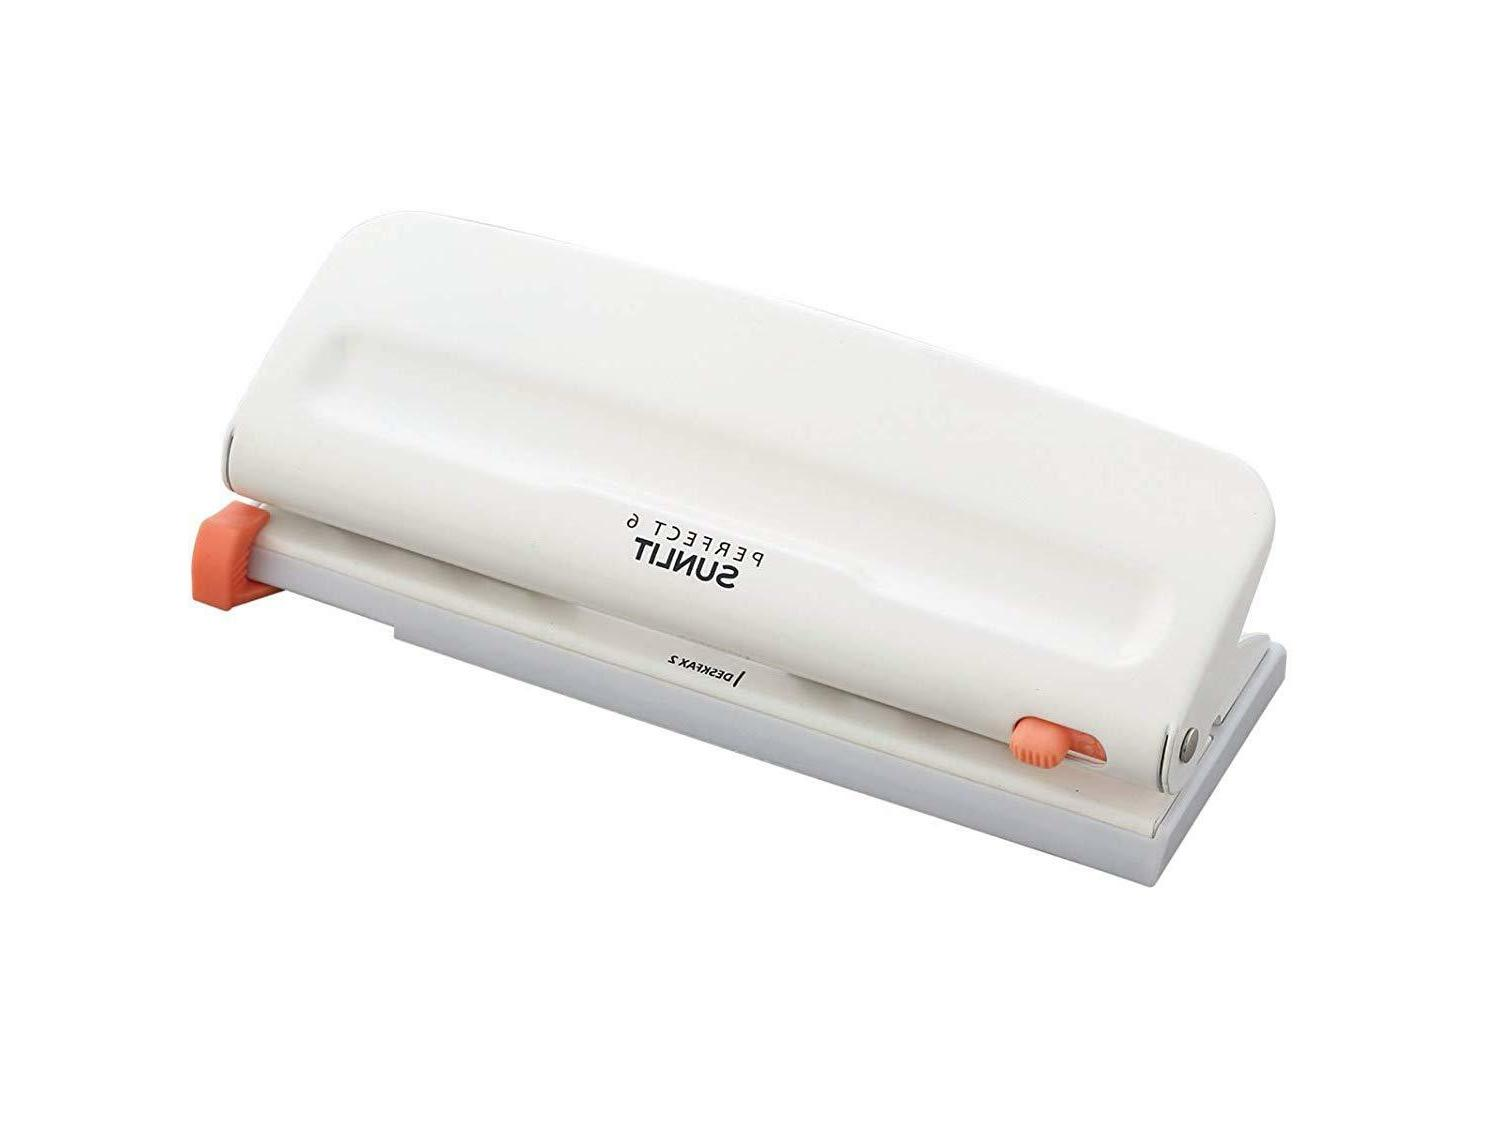 Bair 6 Punch - Desk Paper Perforator for Sheets NEW